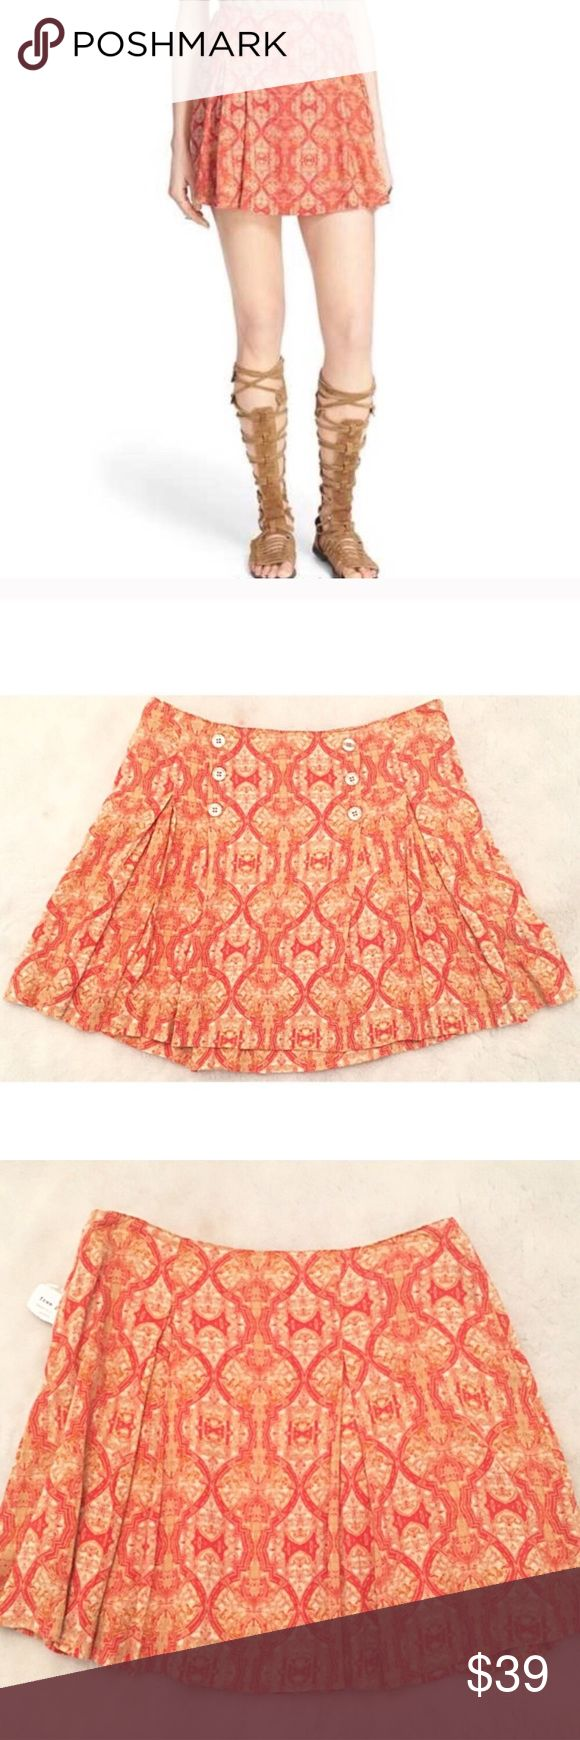 "❣BOGO 1/2 off❣🆕 Free People Poppy combo skirt 6 NWT, flawless. Pretty colors of orange, beige, & tan. Fully lined. 100% rayon. Side zip. Size 6. Measures 16"" long & 28"" waist. ❣Ask me how to BOGO HALF price! ✖️I do NOT MODEL✖️ 🔴Bundle to save! 🔴NO TRADES. 🔴REASONABLE offers welcome via offer button. 🔴Smoke-free home. Fast shipping! Free People Skirts"